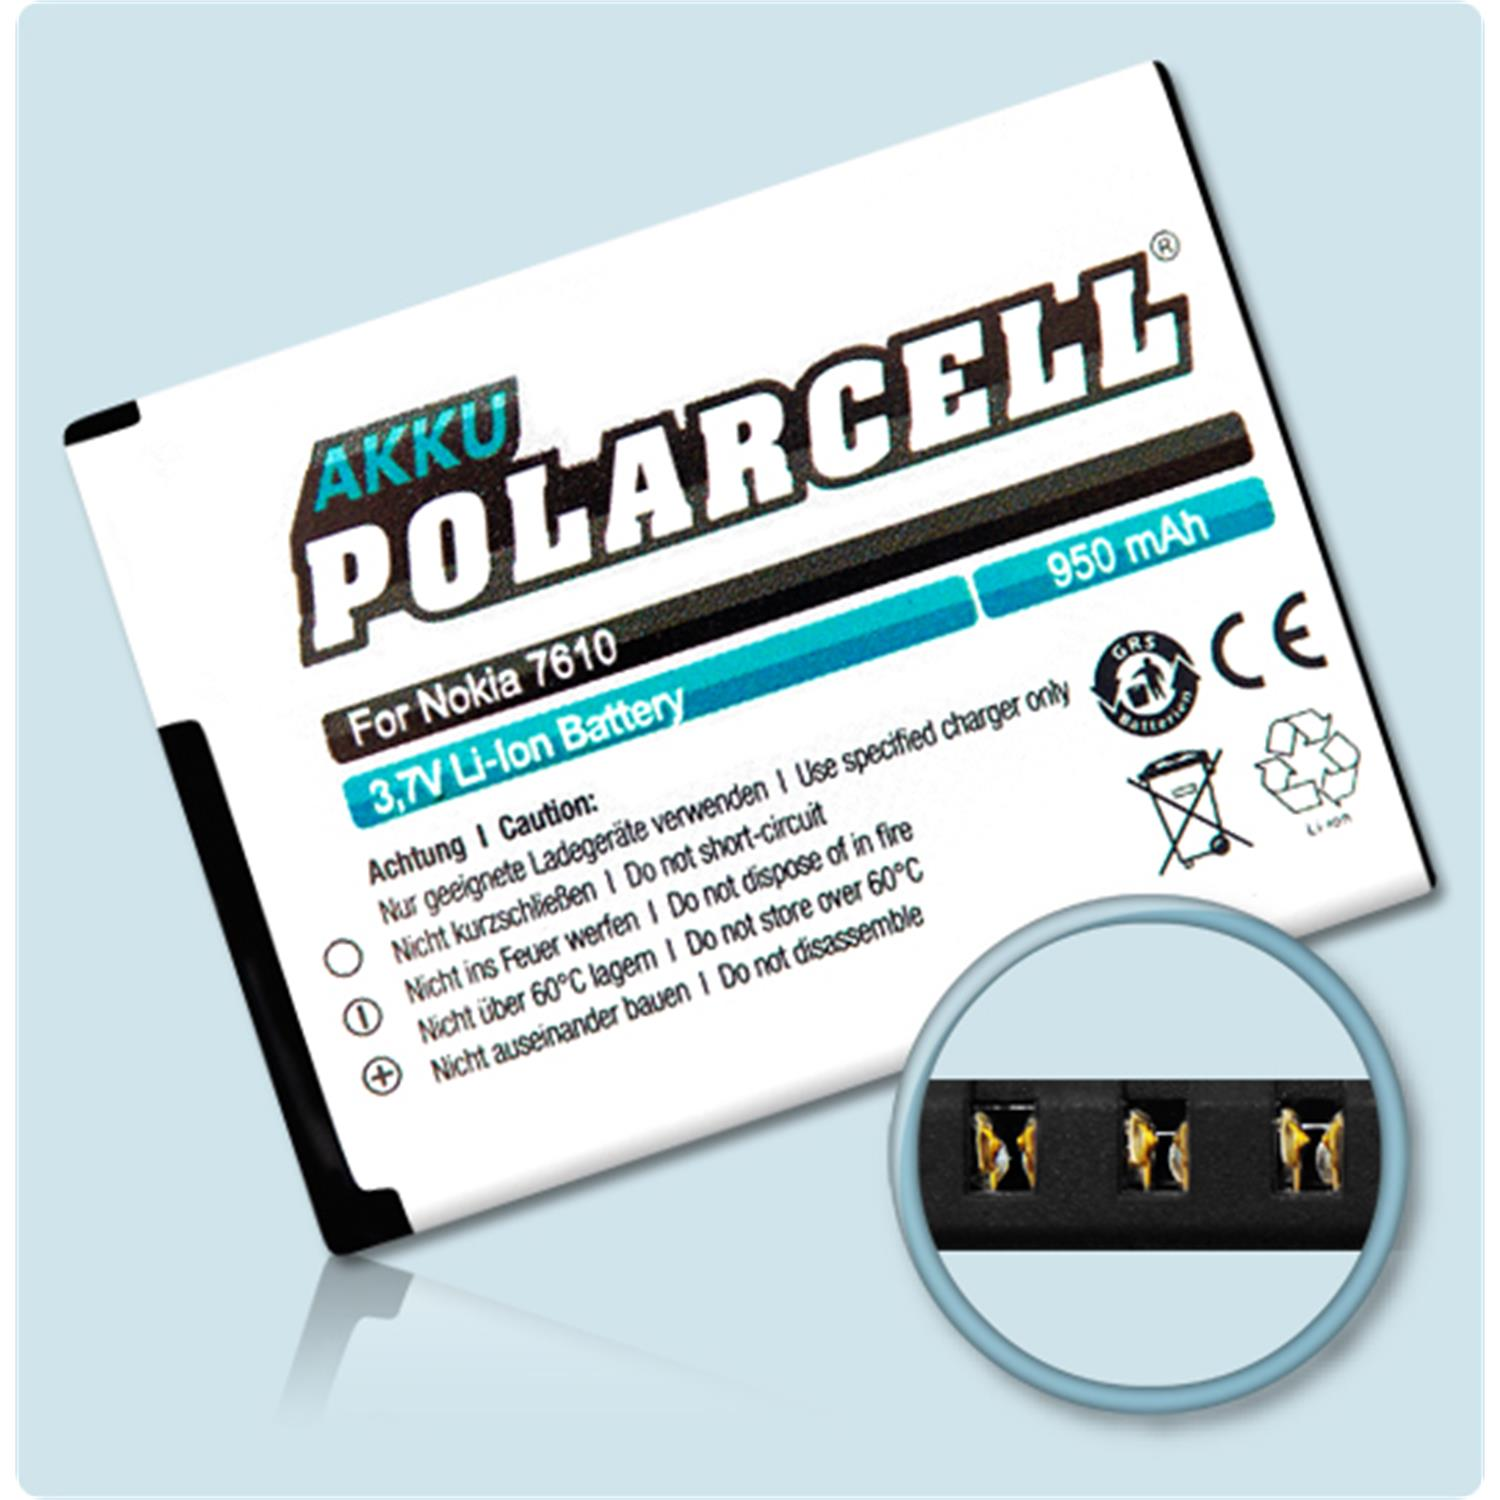 Polarcell Battery For Nokia 7610 Supernova With 950mah Buy Now